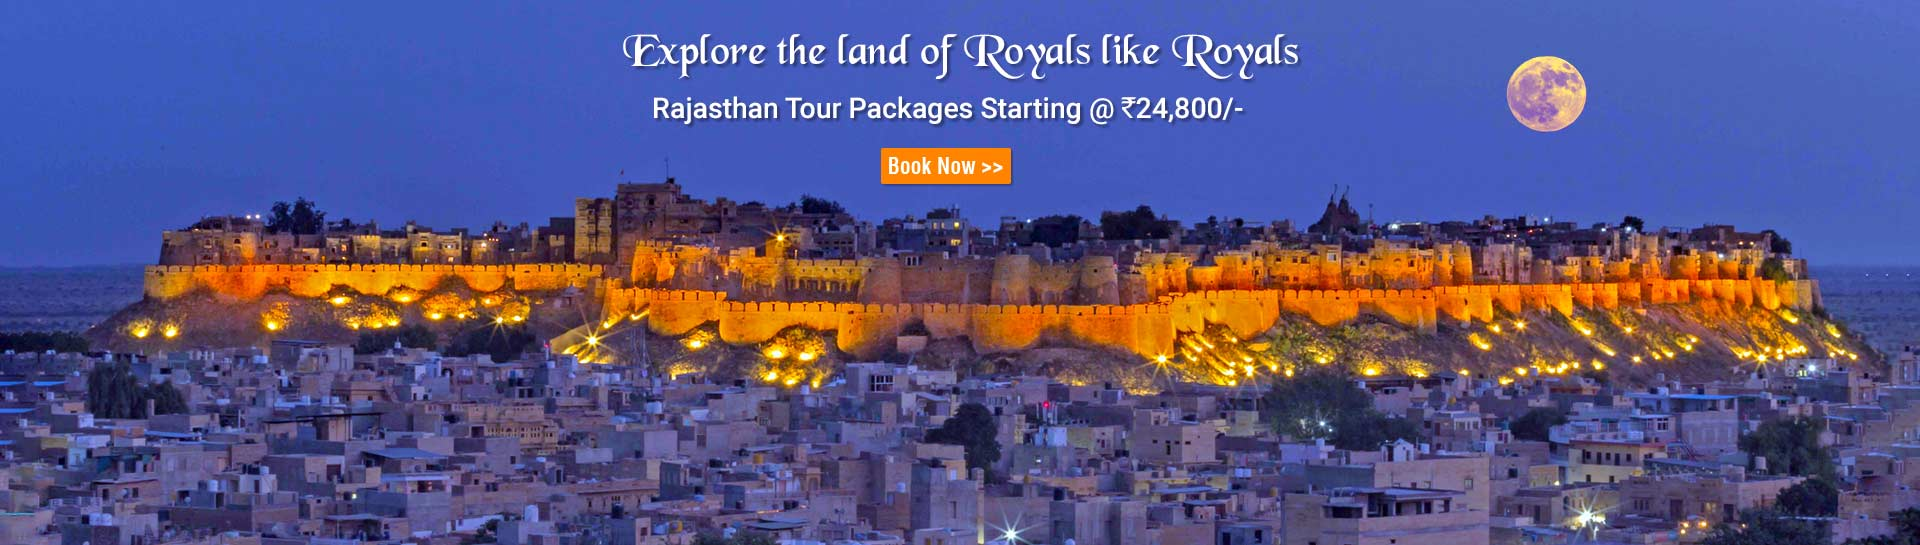 Visit our website: SOTC for Holidays - Patel Nagar, Varanasi